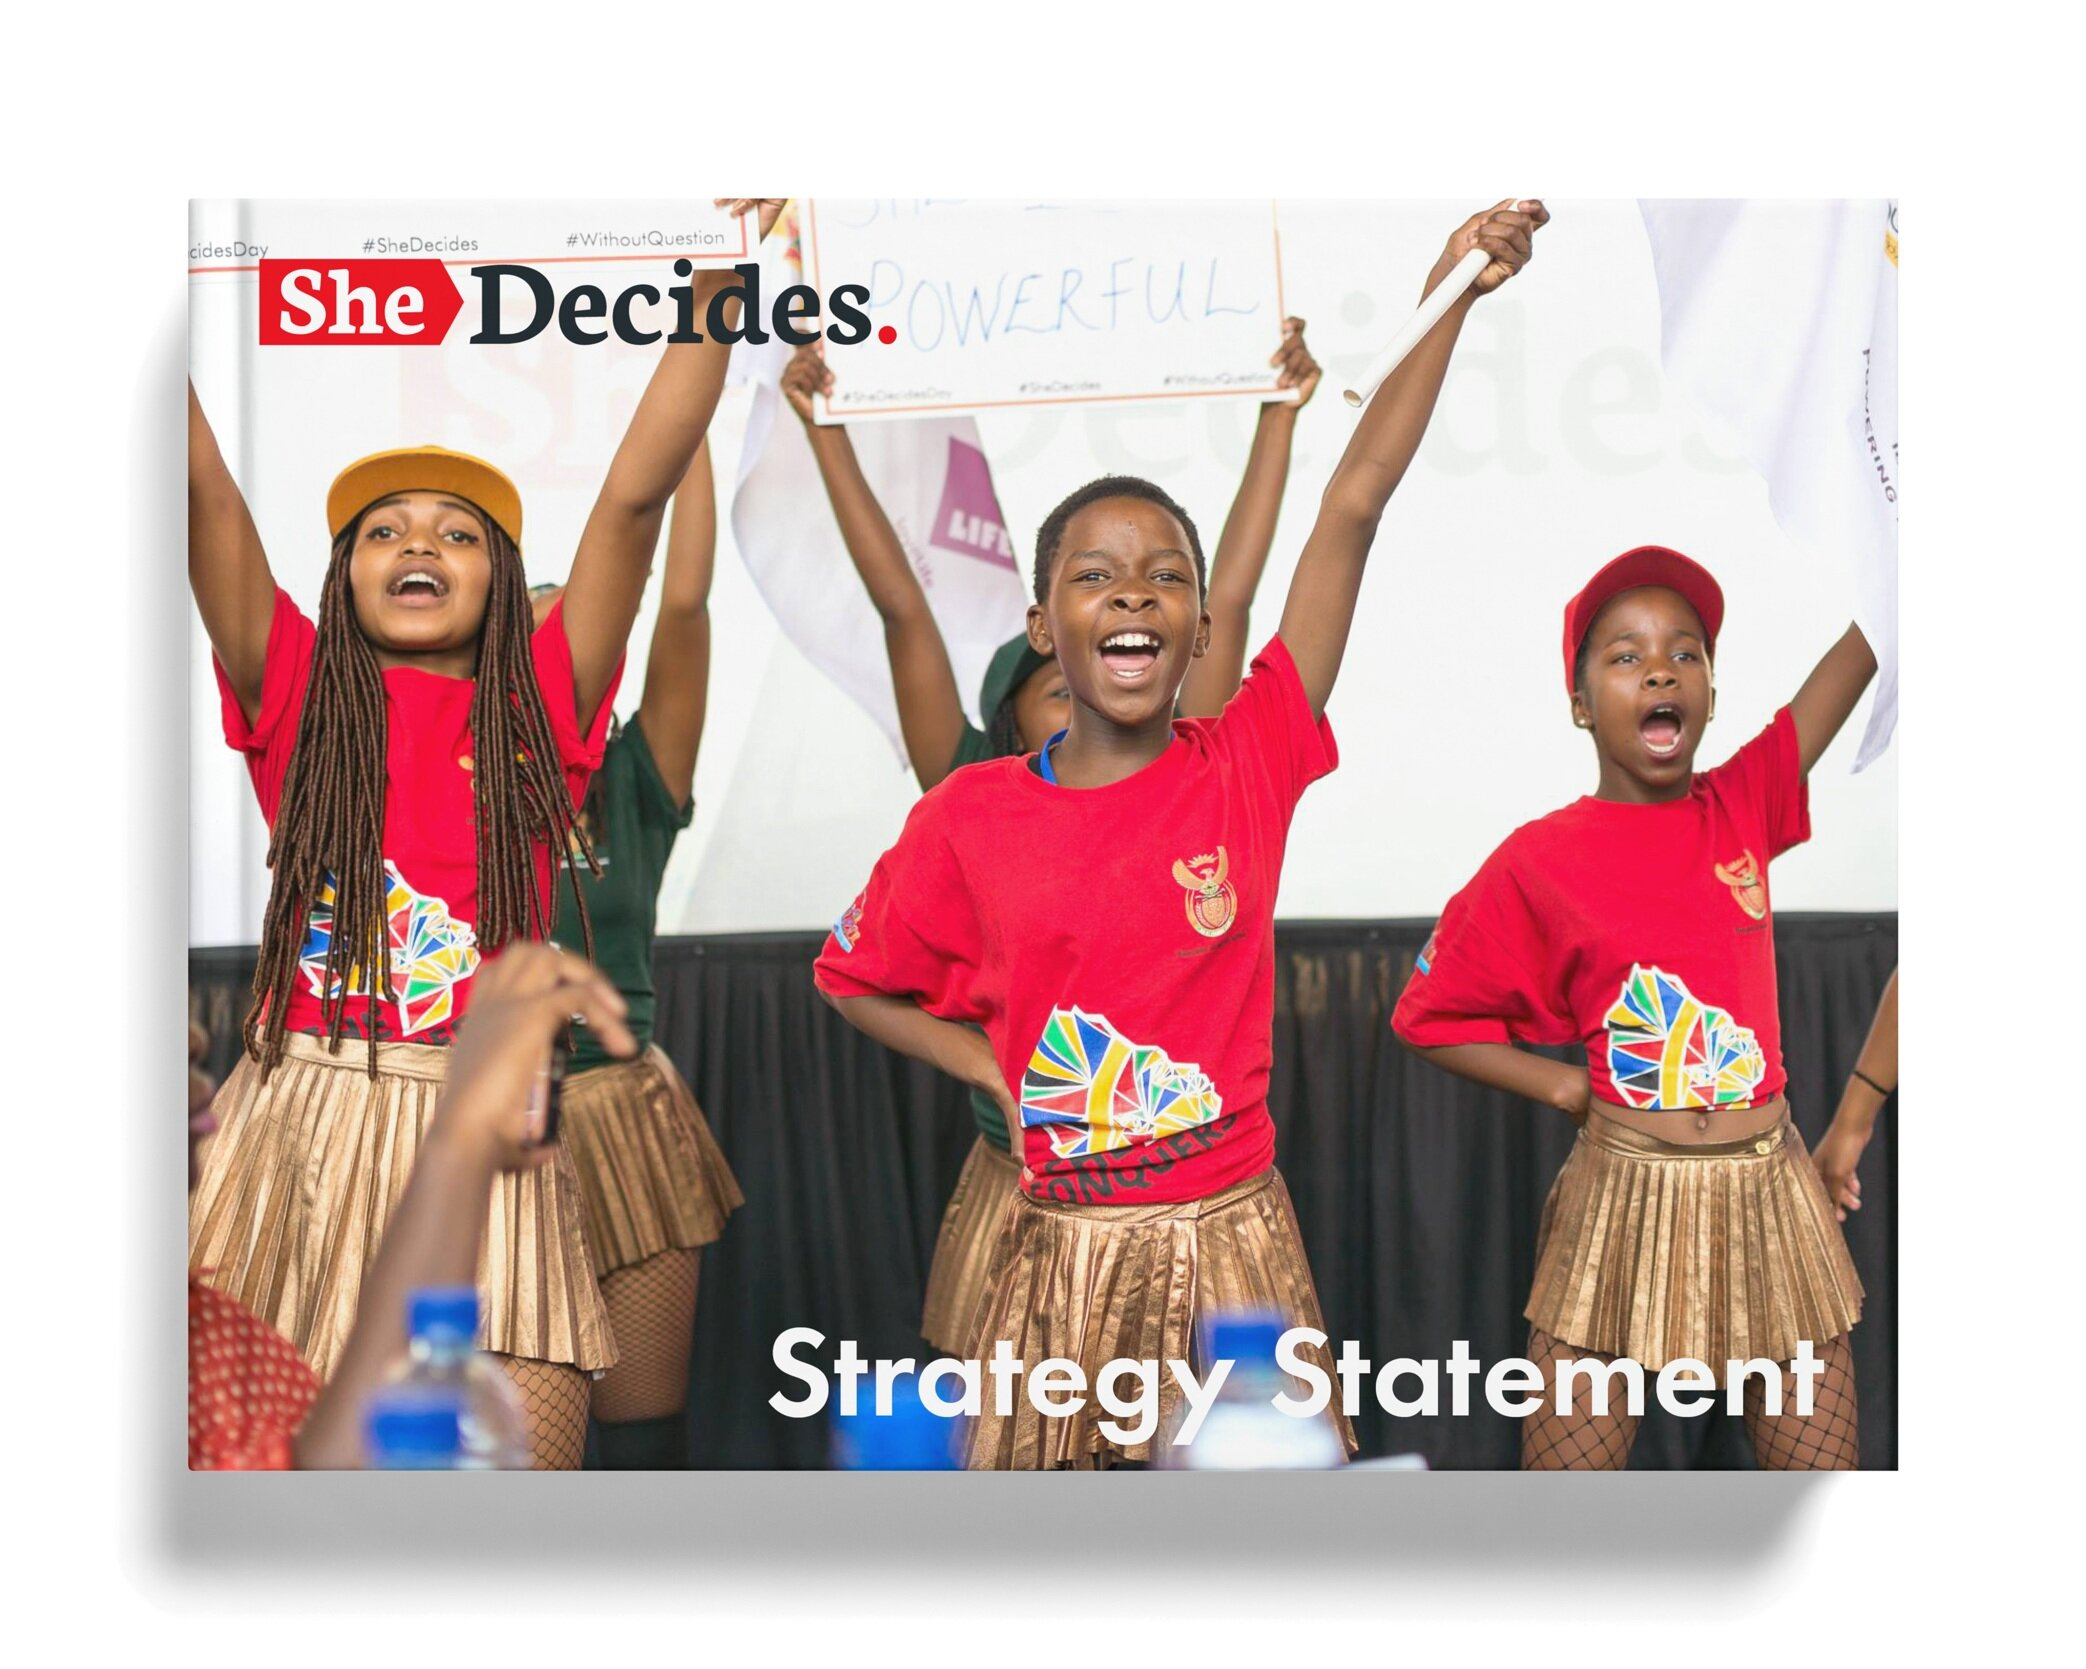 shedecides_strategy_cover_1.png